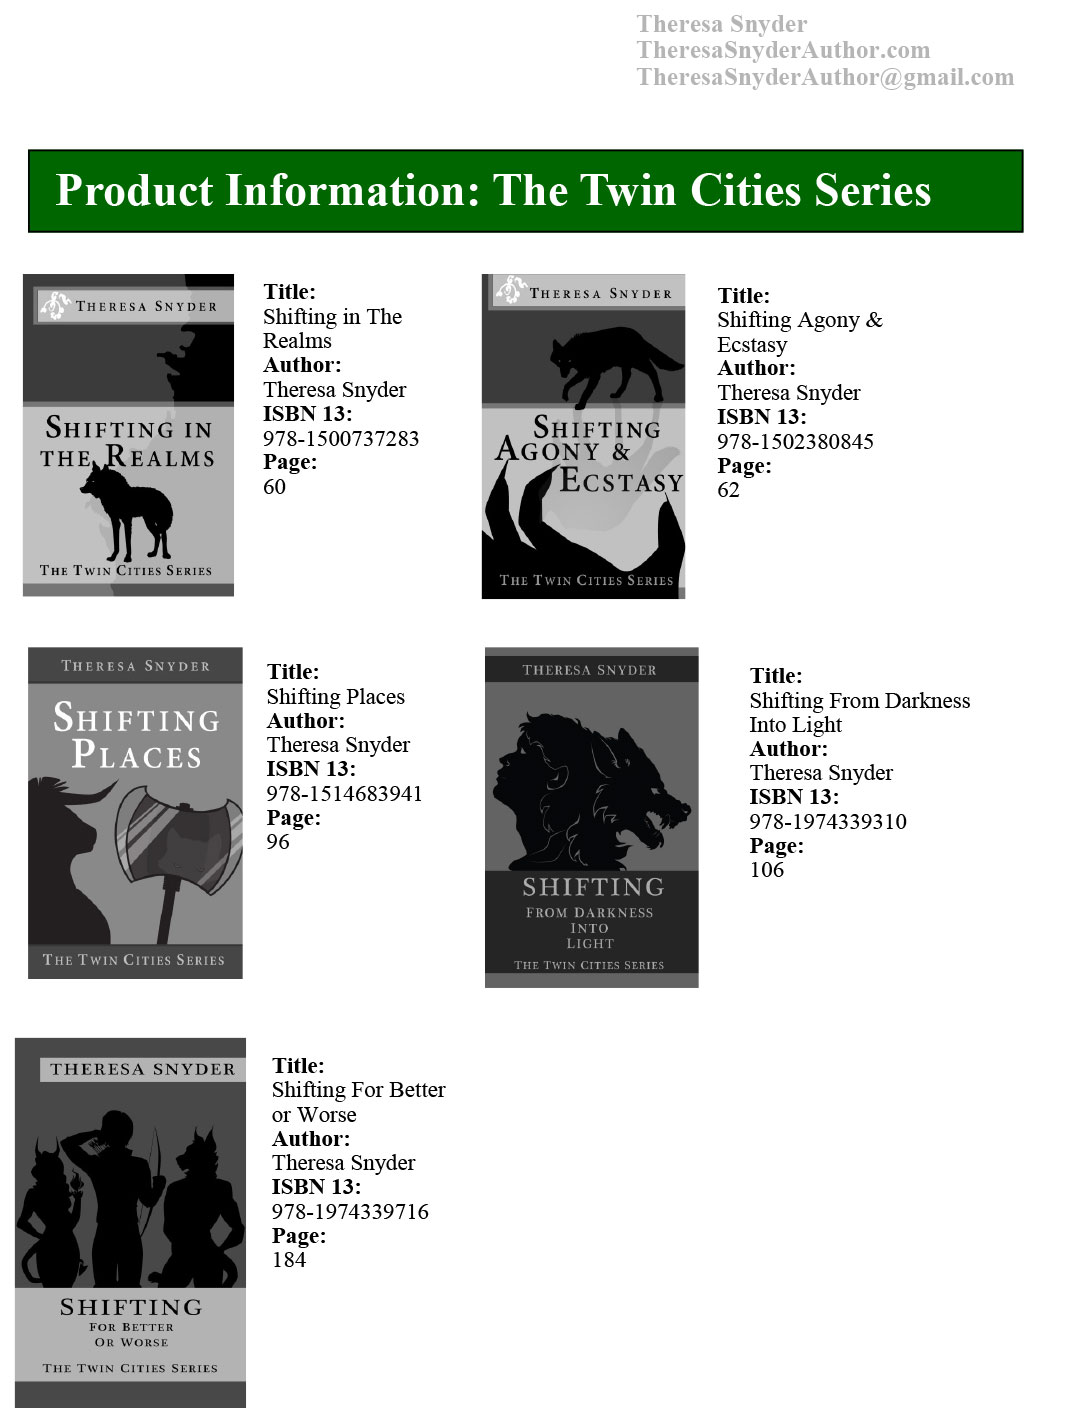 Product info: The Twin Cities Series